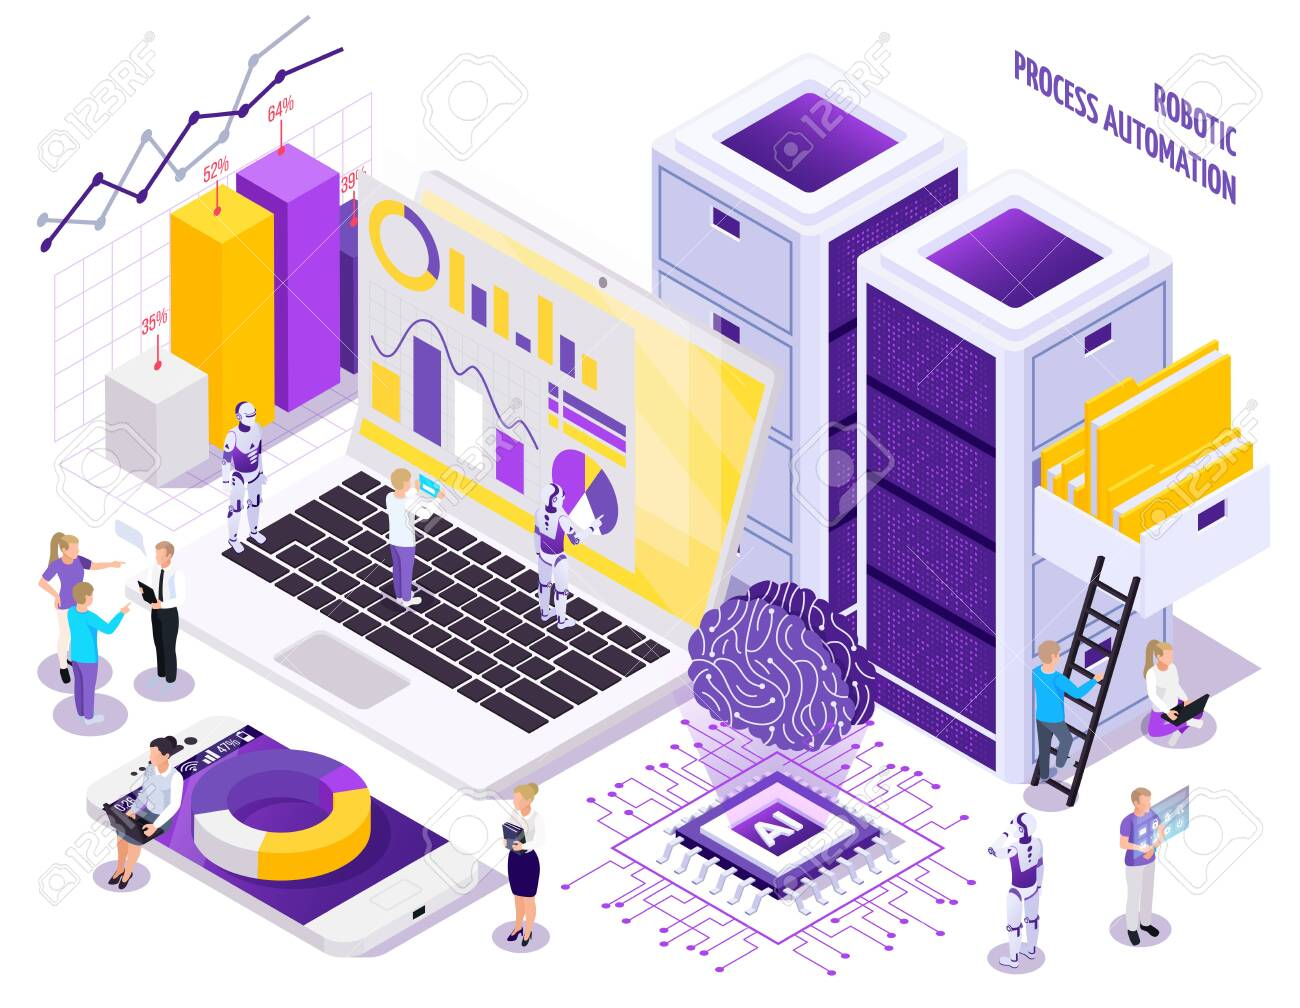 Robotic process automation isometric composition with little human characters and images of office workspace essential elements vector illustration - 128161204